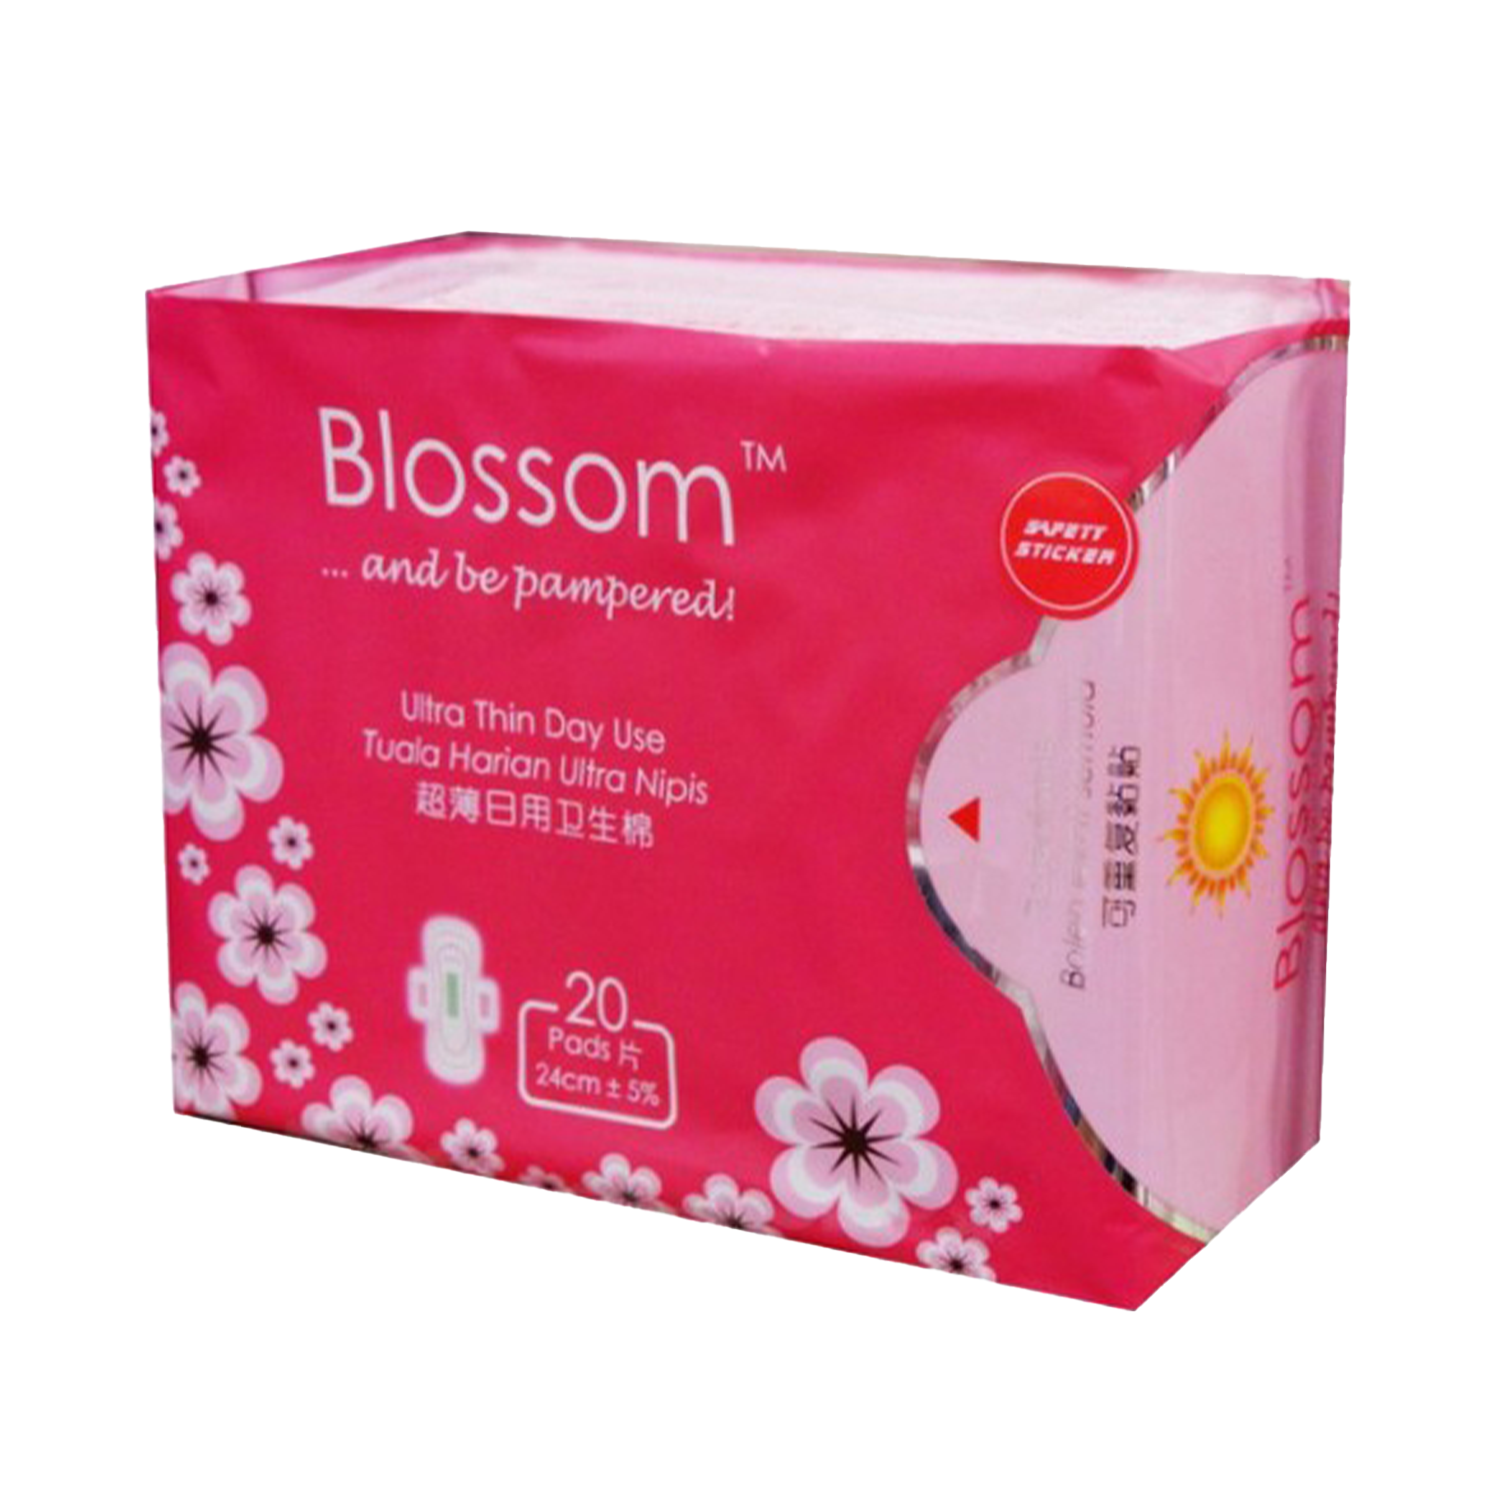 Blossom Day Use Ultra Thin Wing 20's